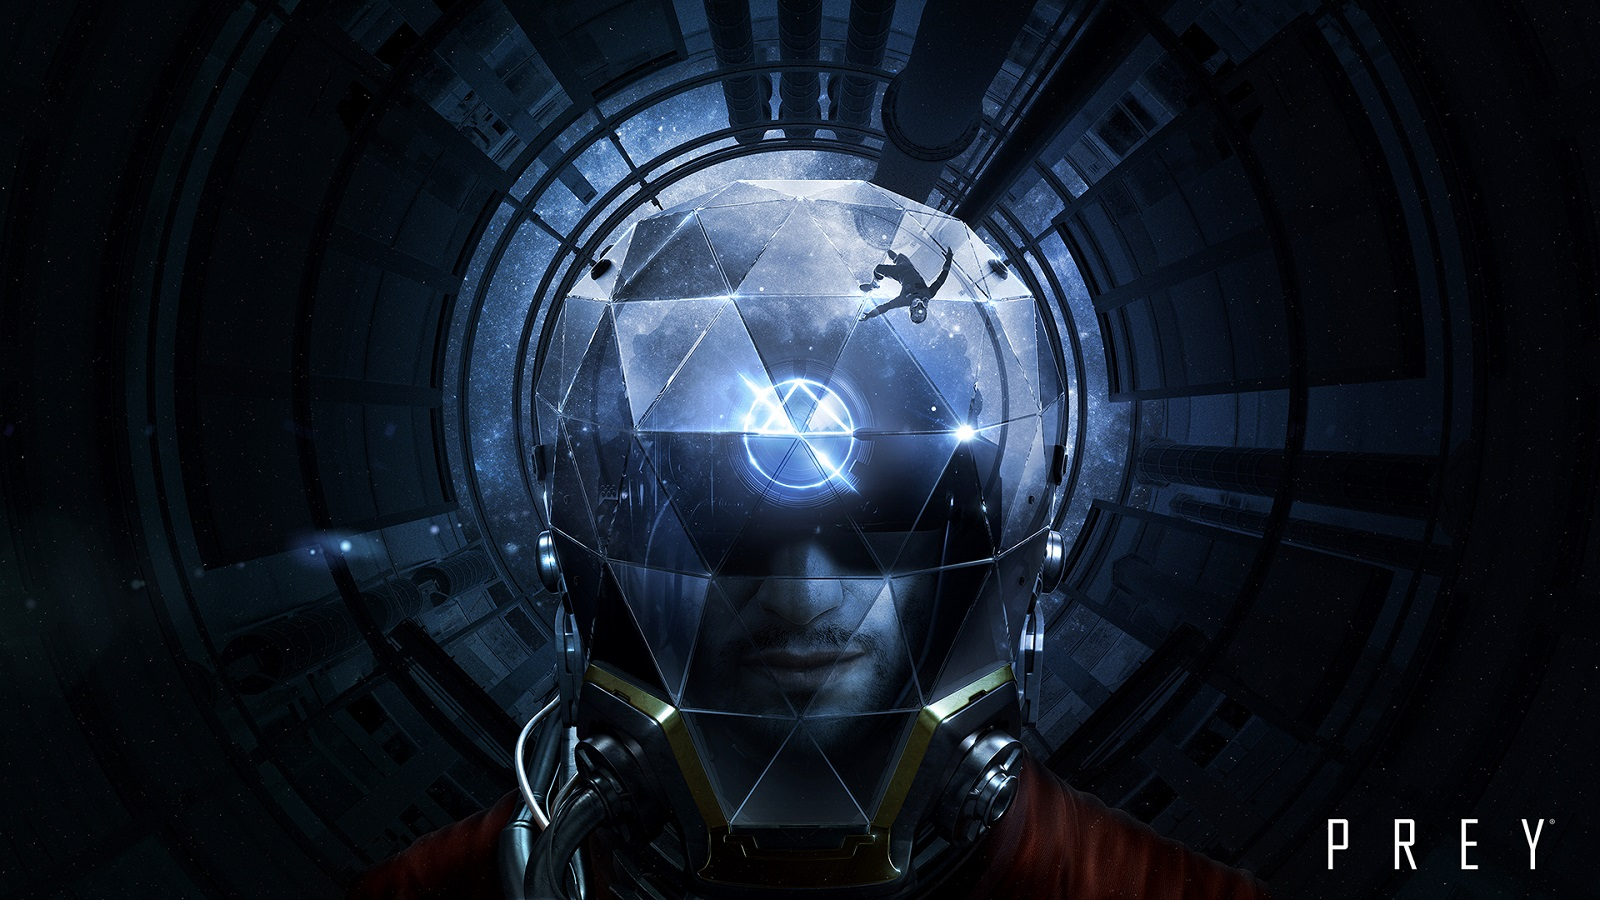 Утечка: Prey получит издание для PlayStation VR